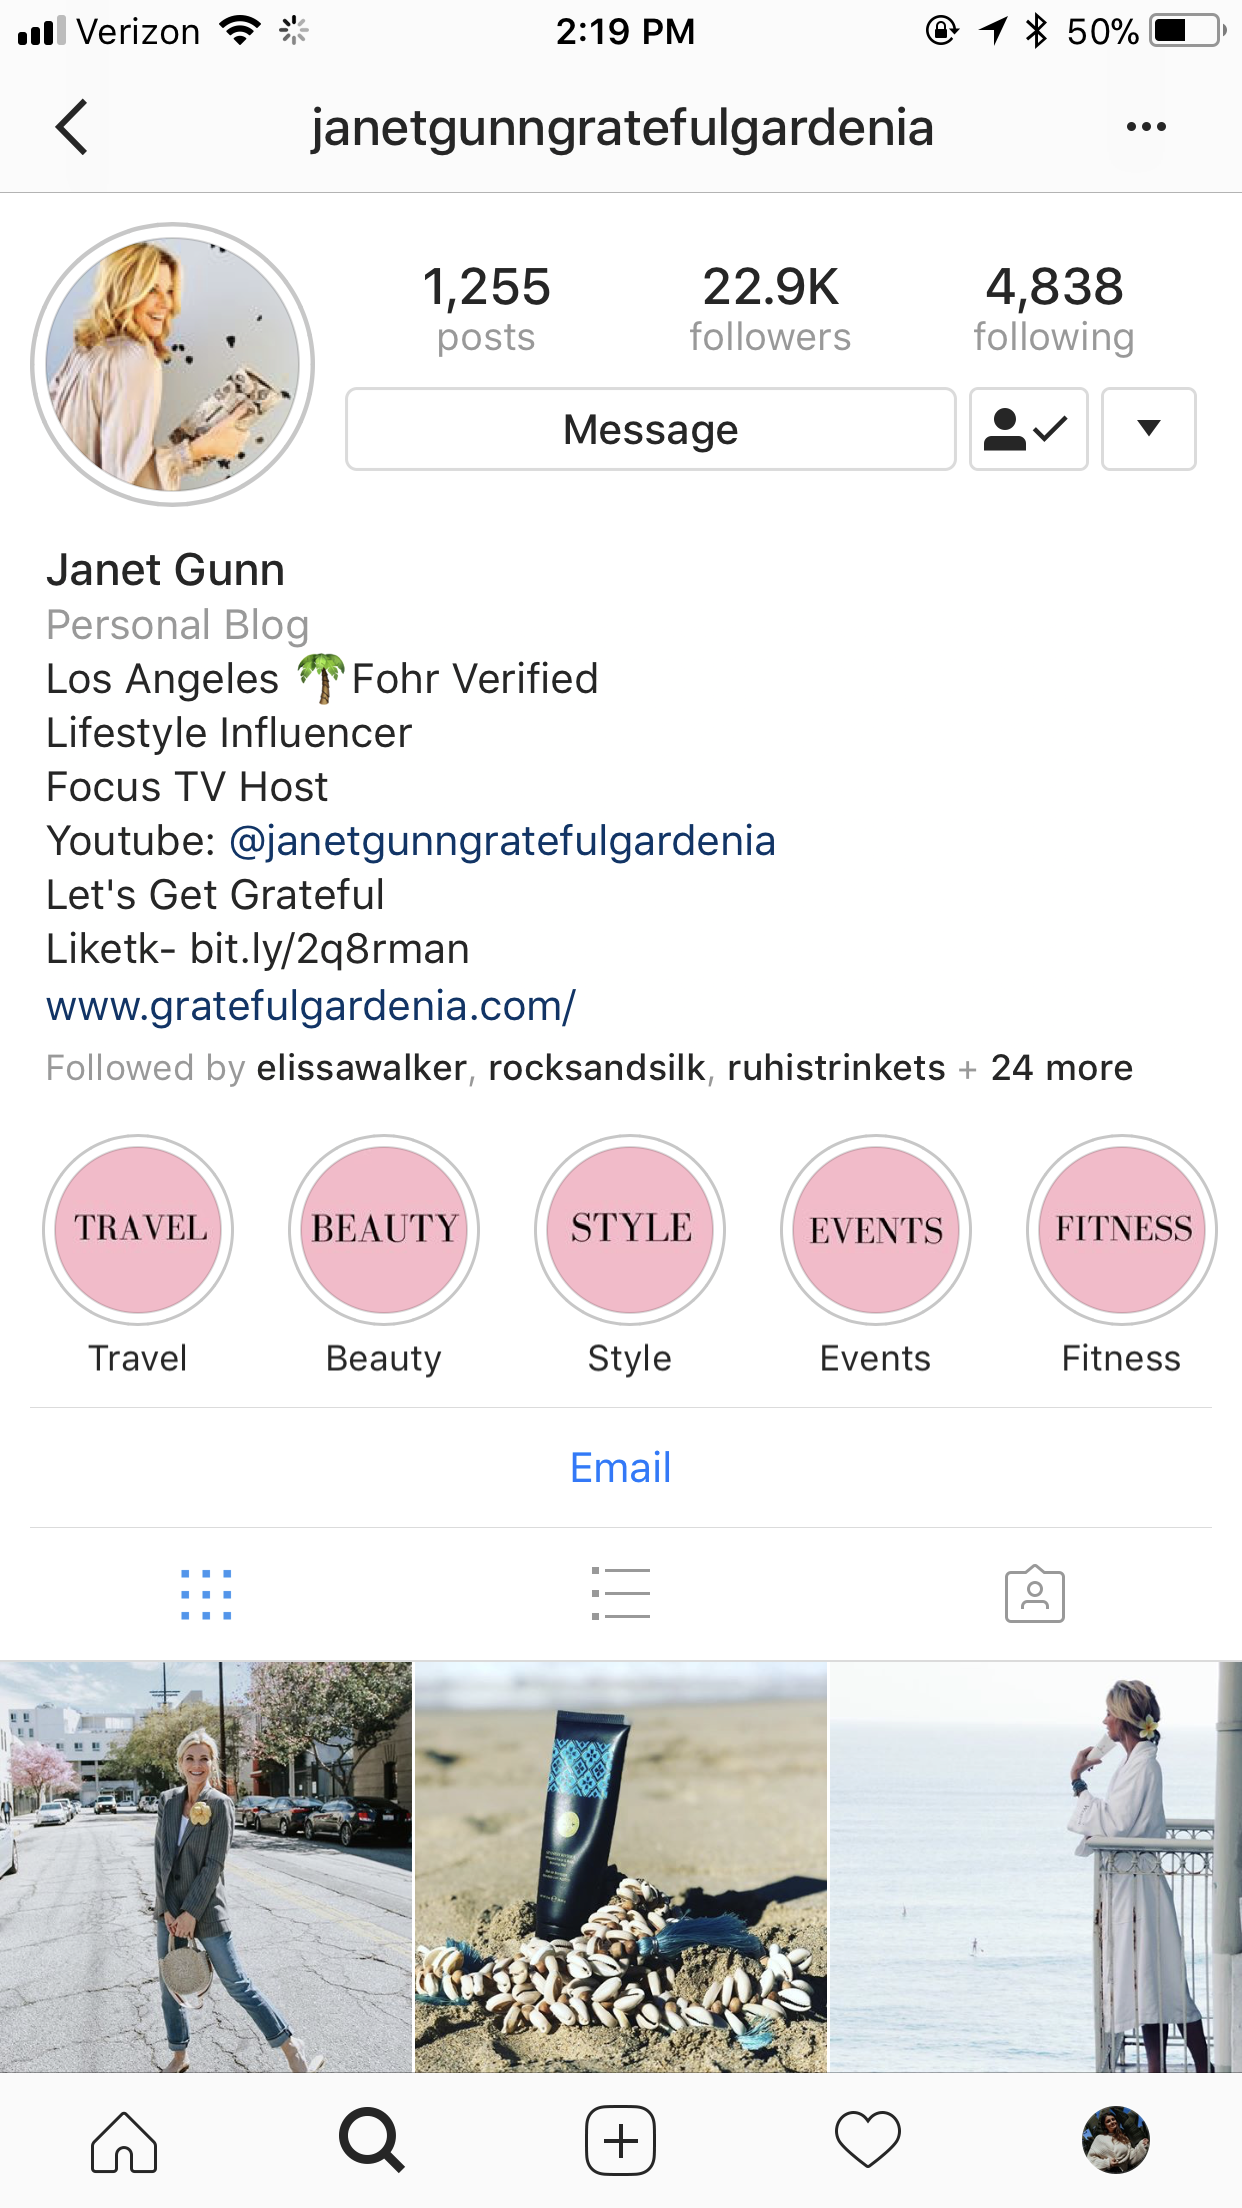 - 1. Follow me on Instagram @janetgunngratefulgardenia